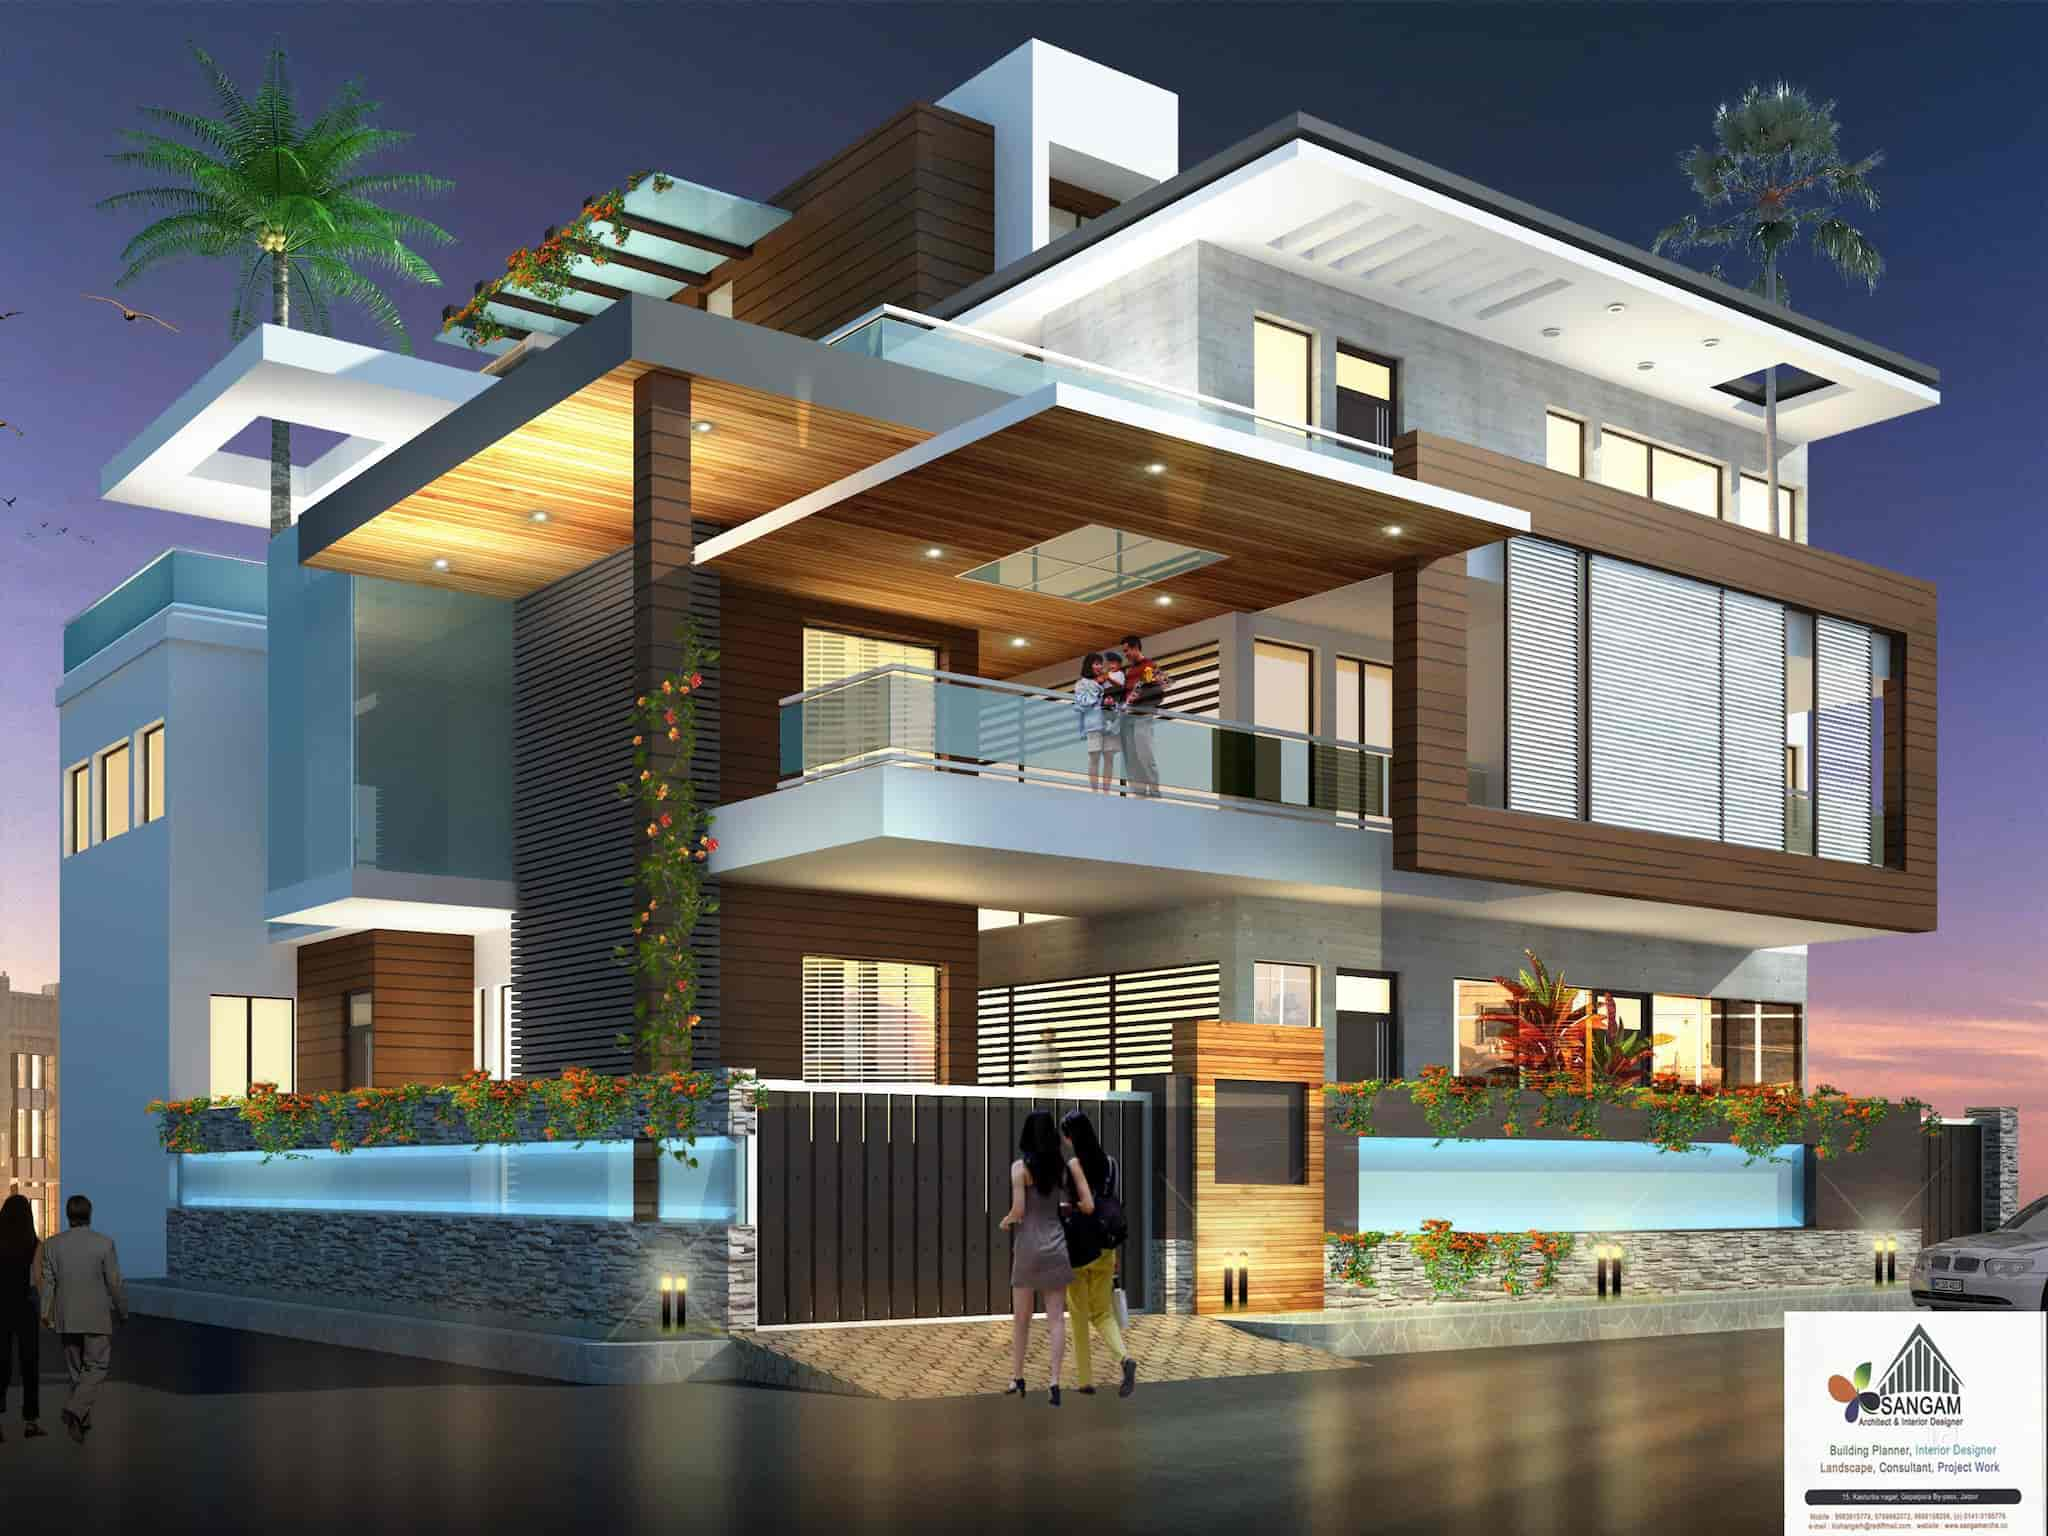 Sangam architect interior designer nirman nagar architects in jaipur justdial